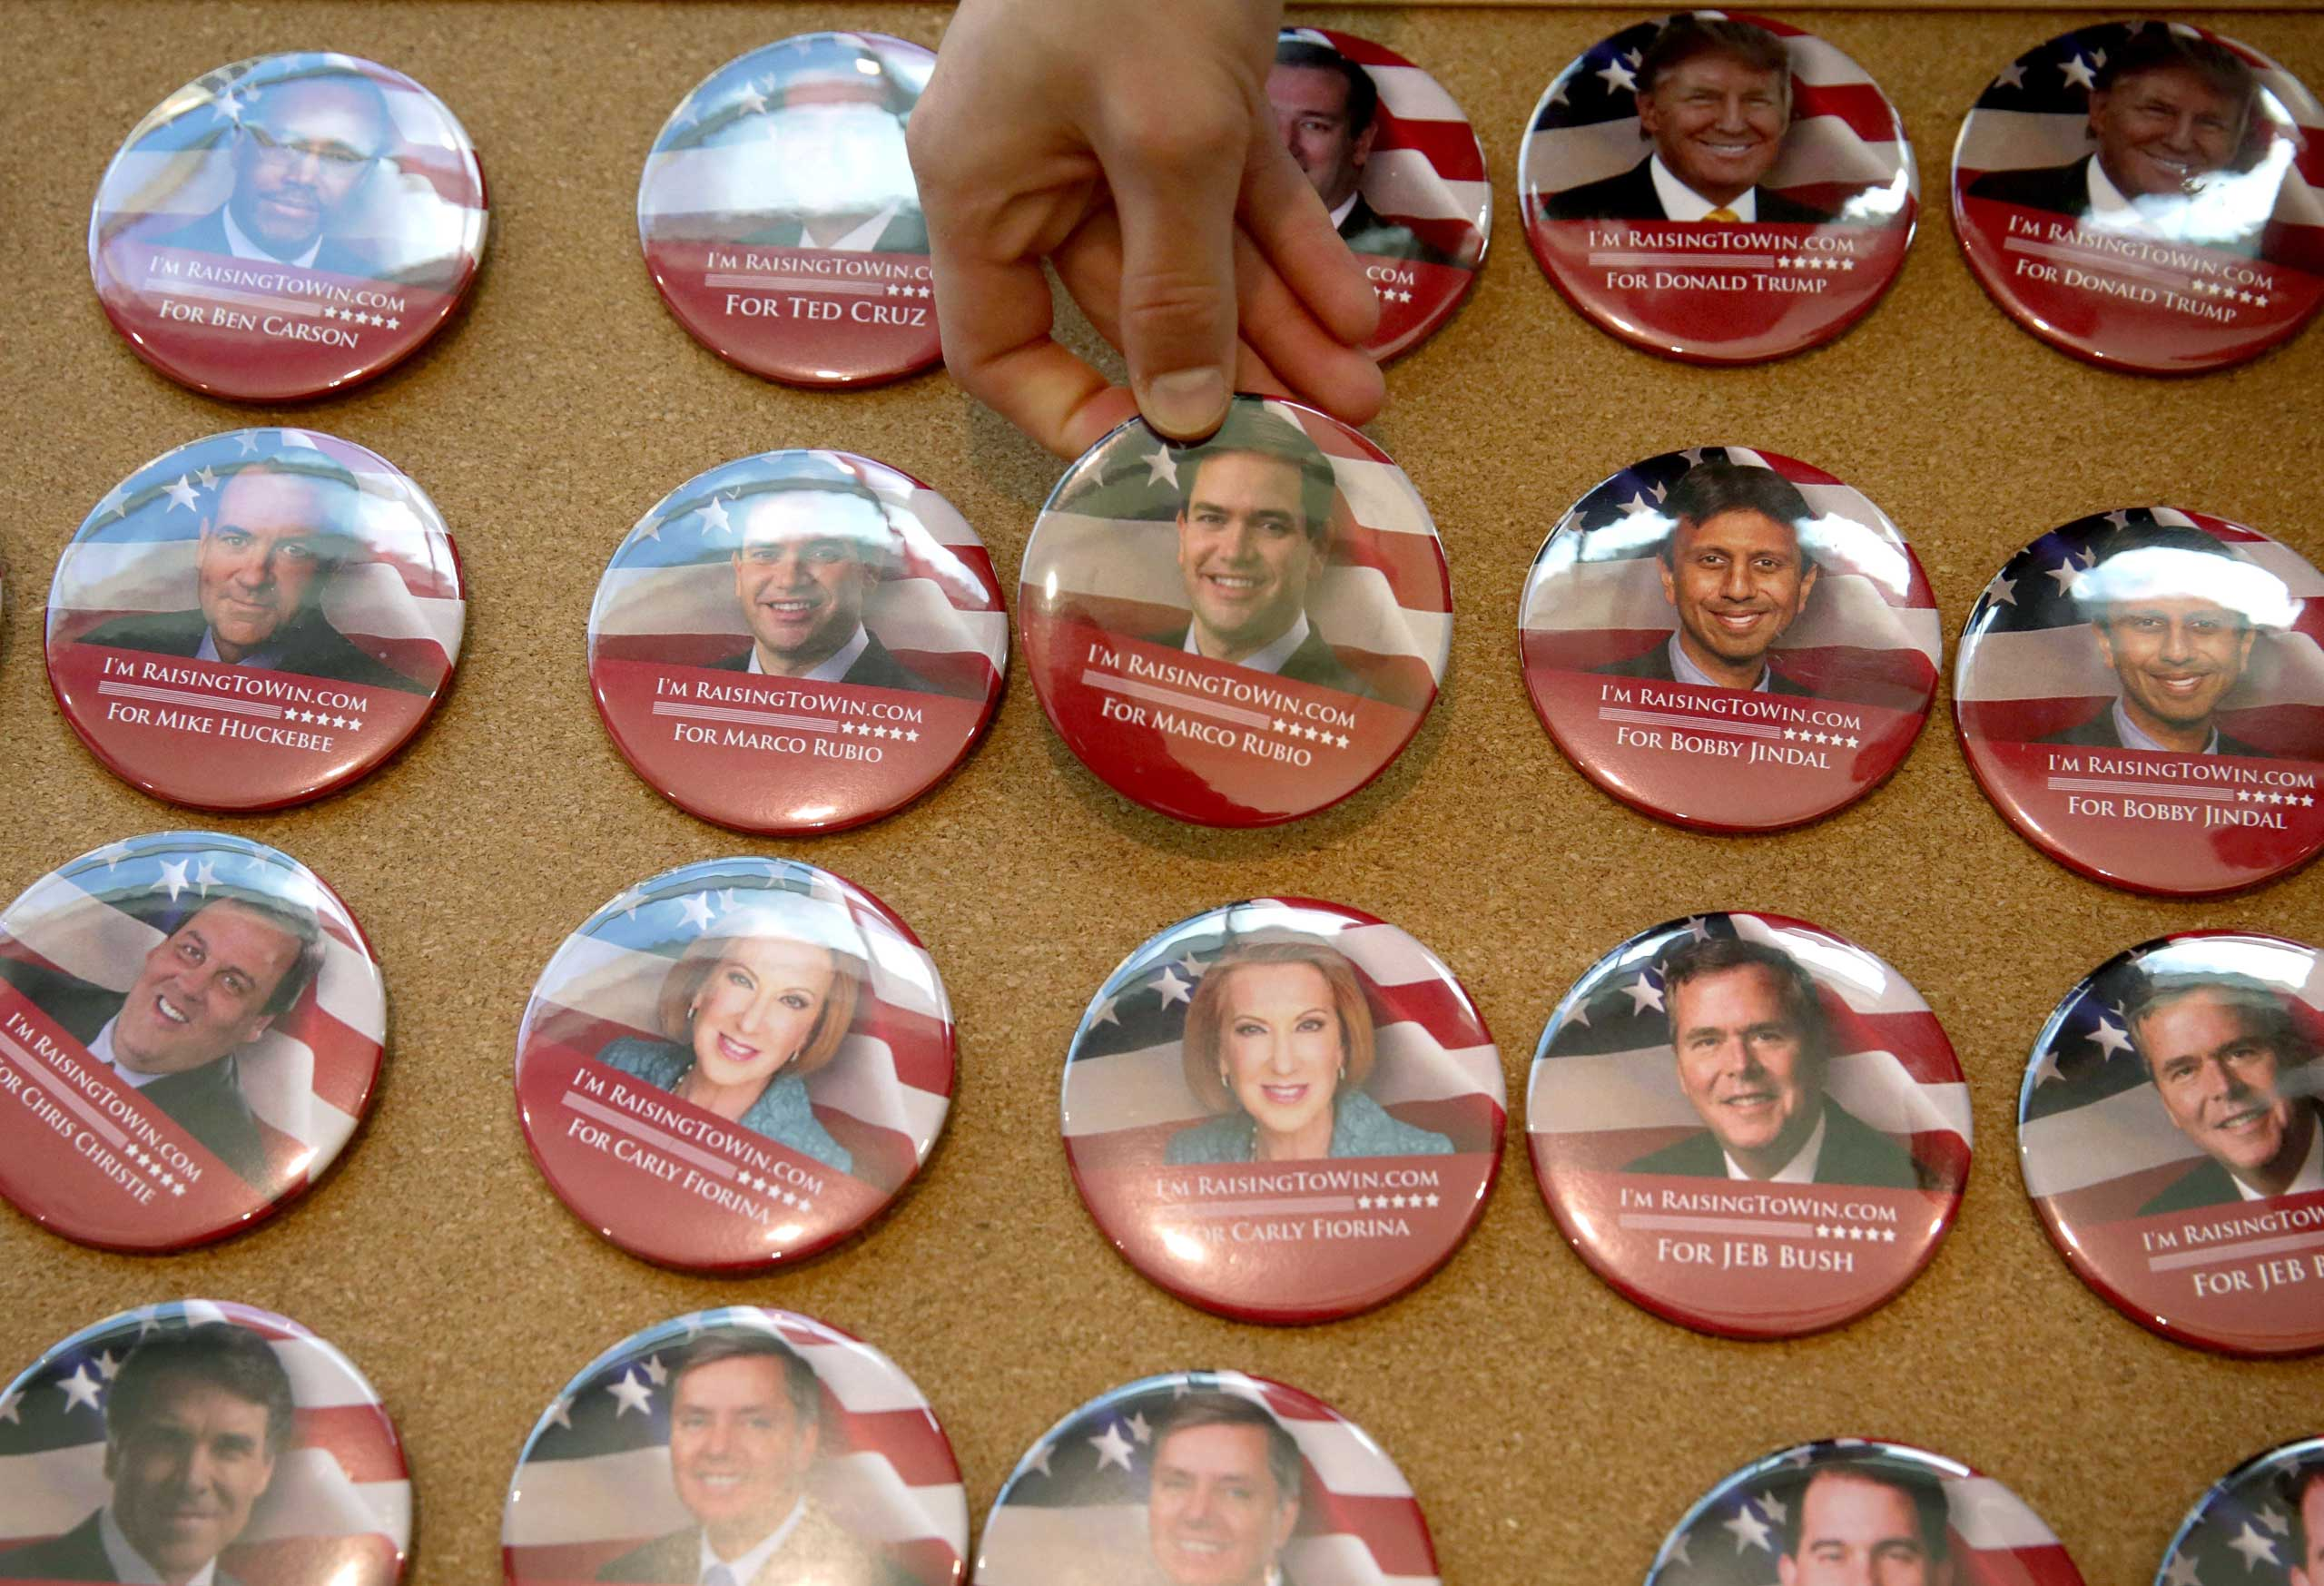 Buttons featuring Republican presidential hopefuls on display during the 2015 Southern Republican Leadership Conference in Oklahoma City on May 21, 2015.